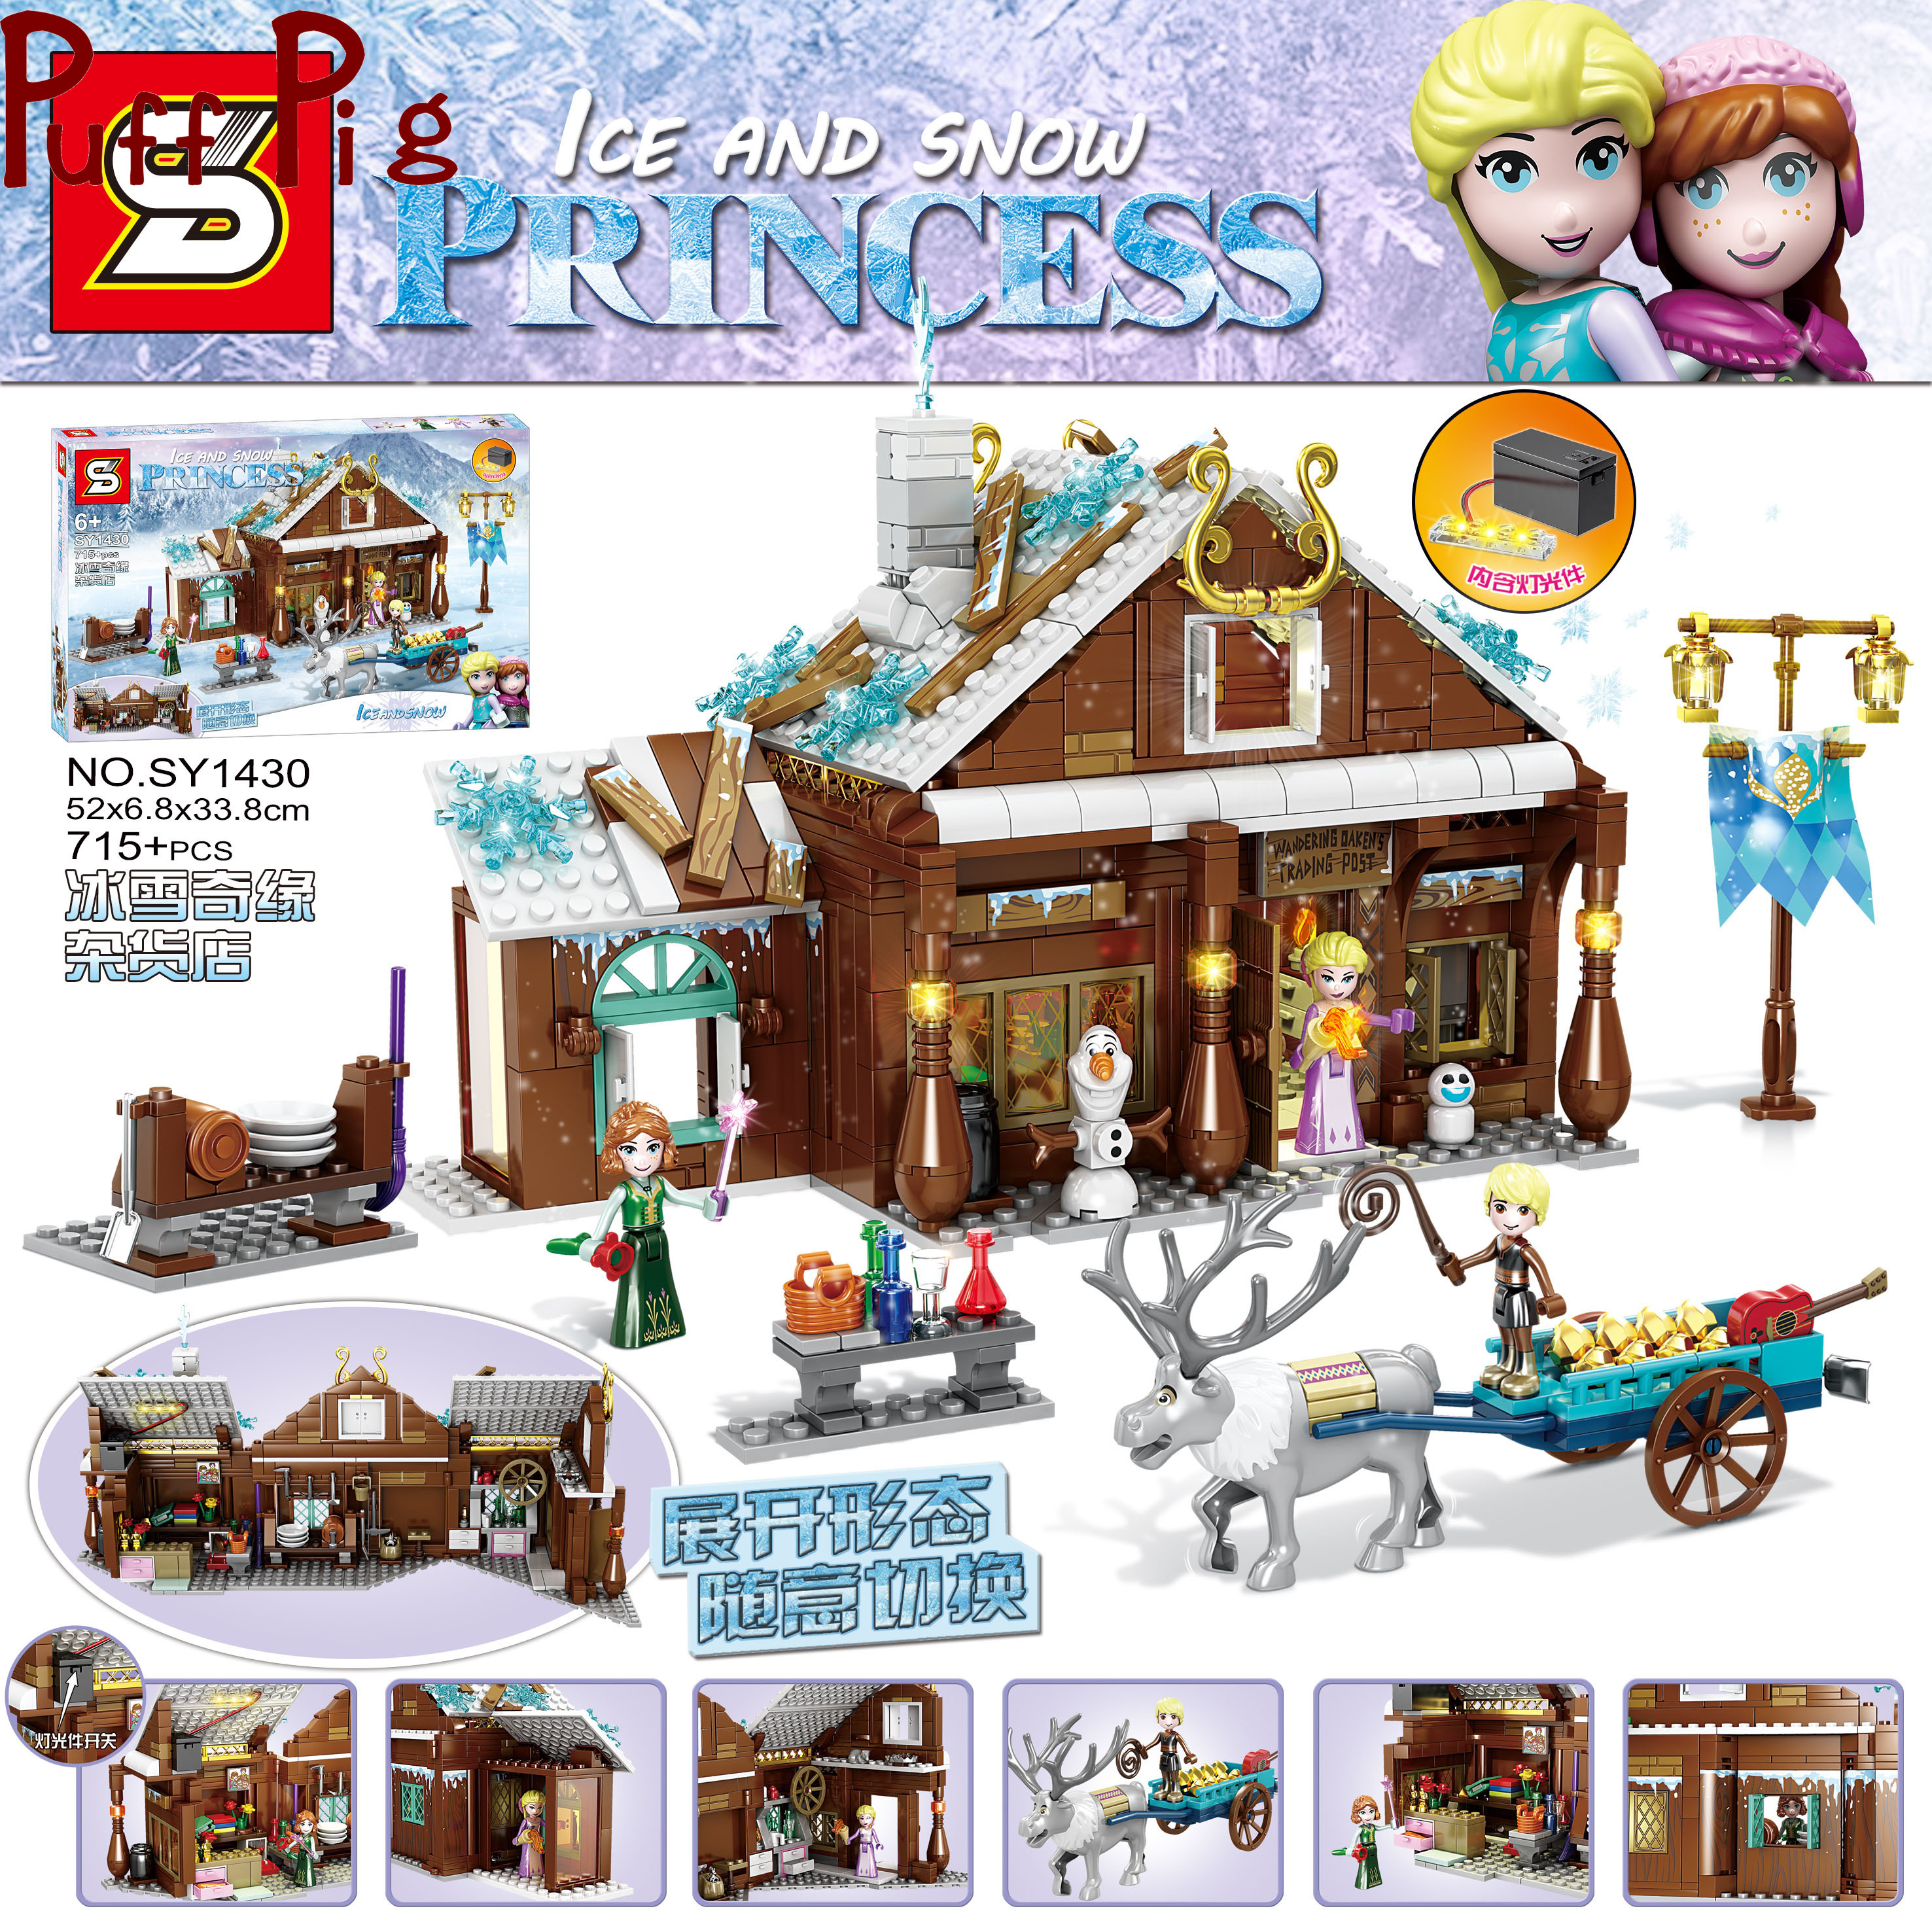 Ice and Snow Princess Castle Frozened Building Blocks Compatible Legoinglys Friends Figures <font><b>Grocery</b></font> <font><b>Store</b></font> Girls <font><b>Toy</b></font> Bricks image